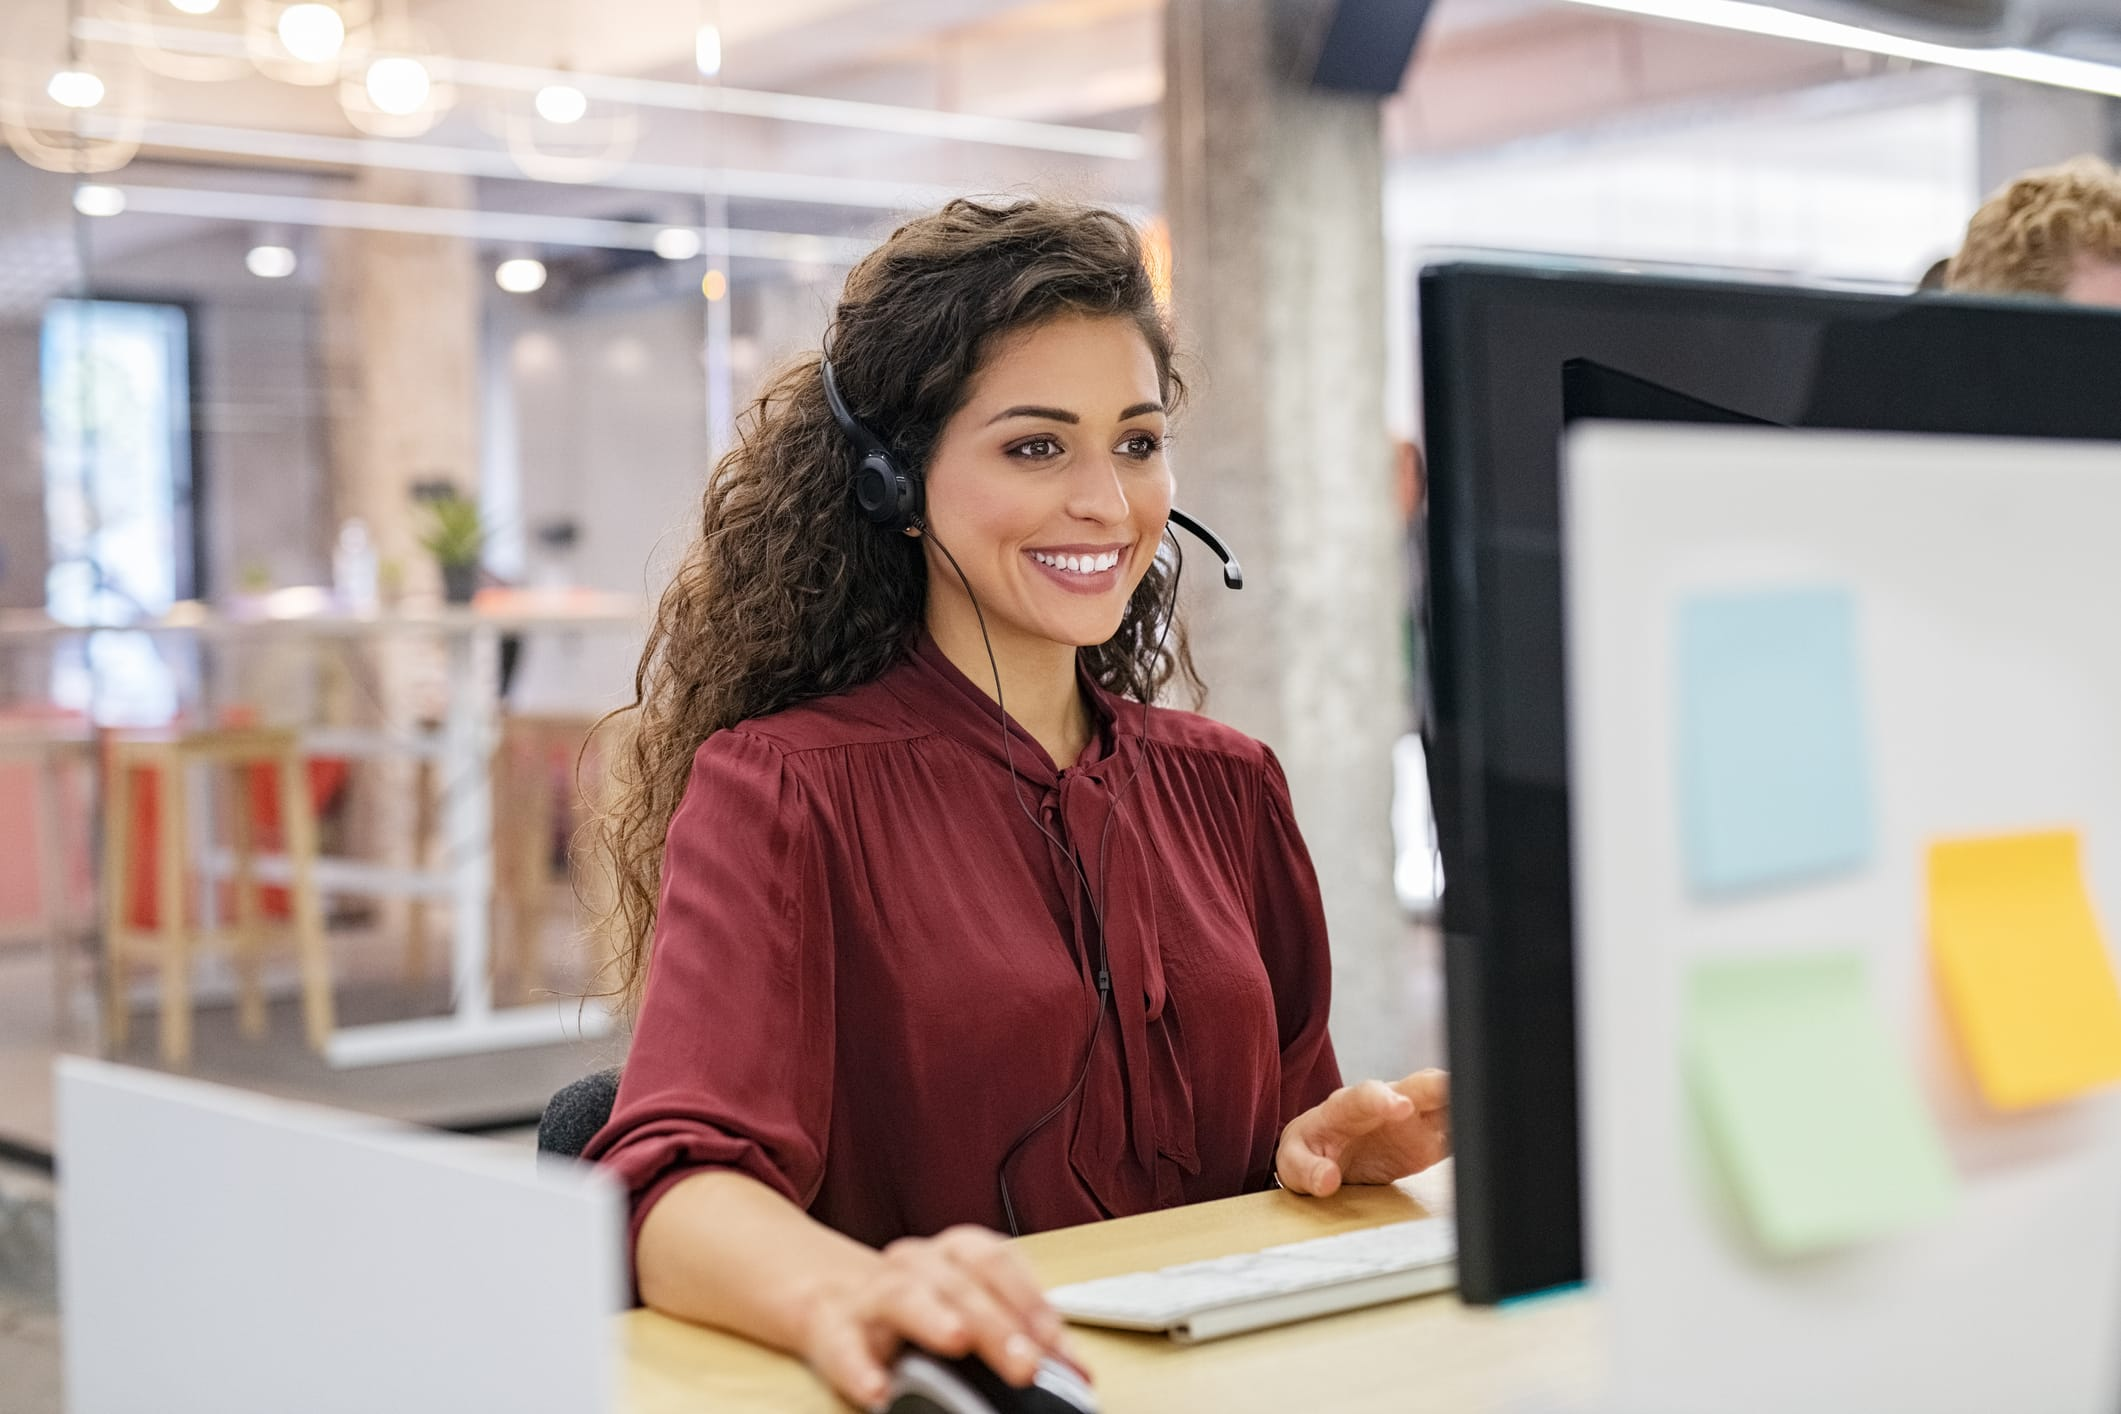 Woman smiling at computer